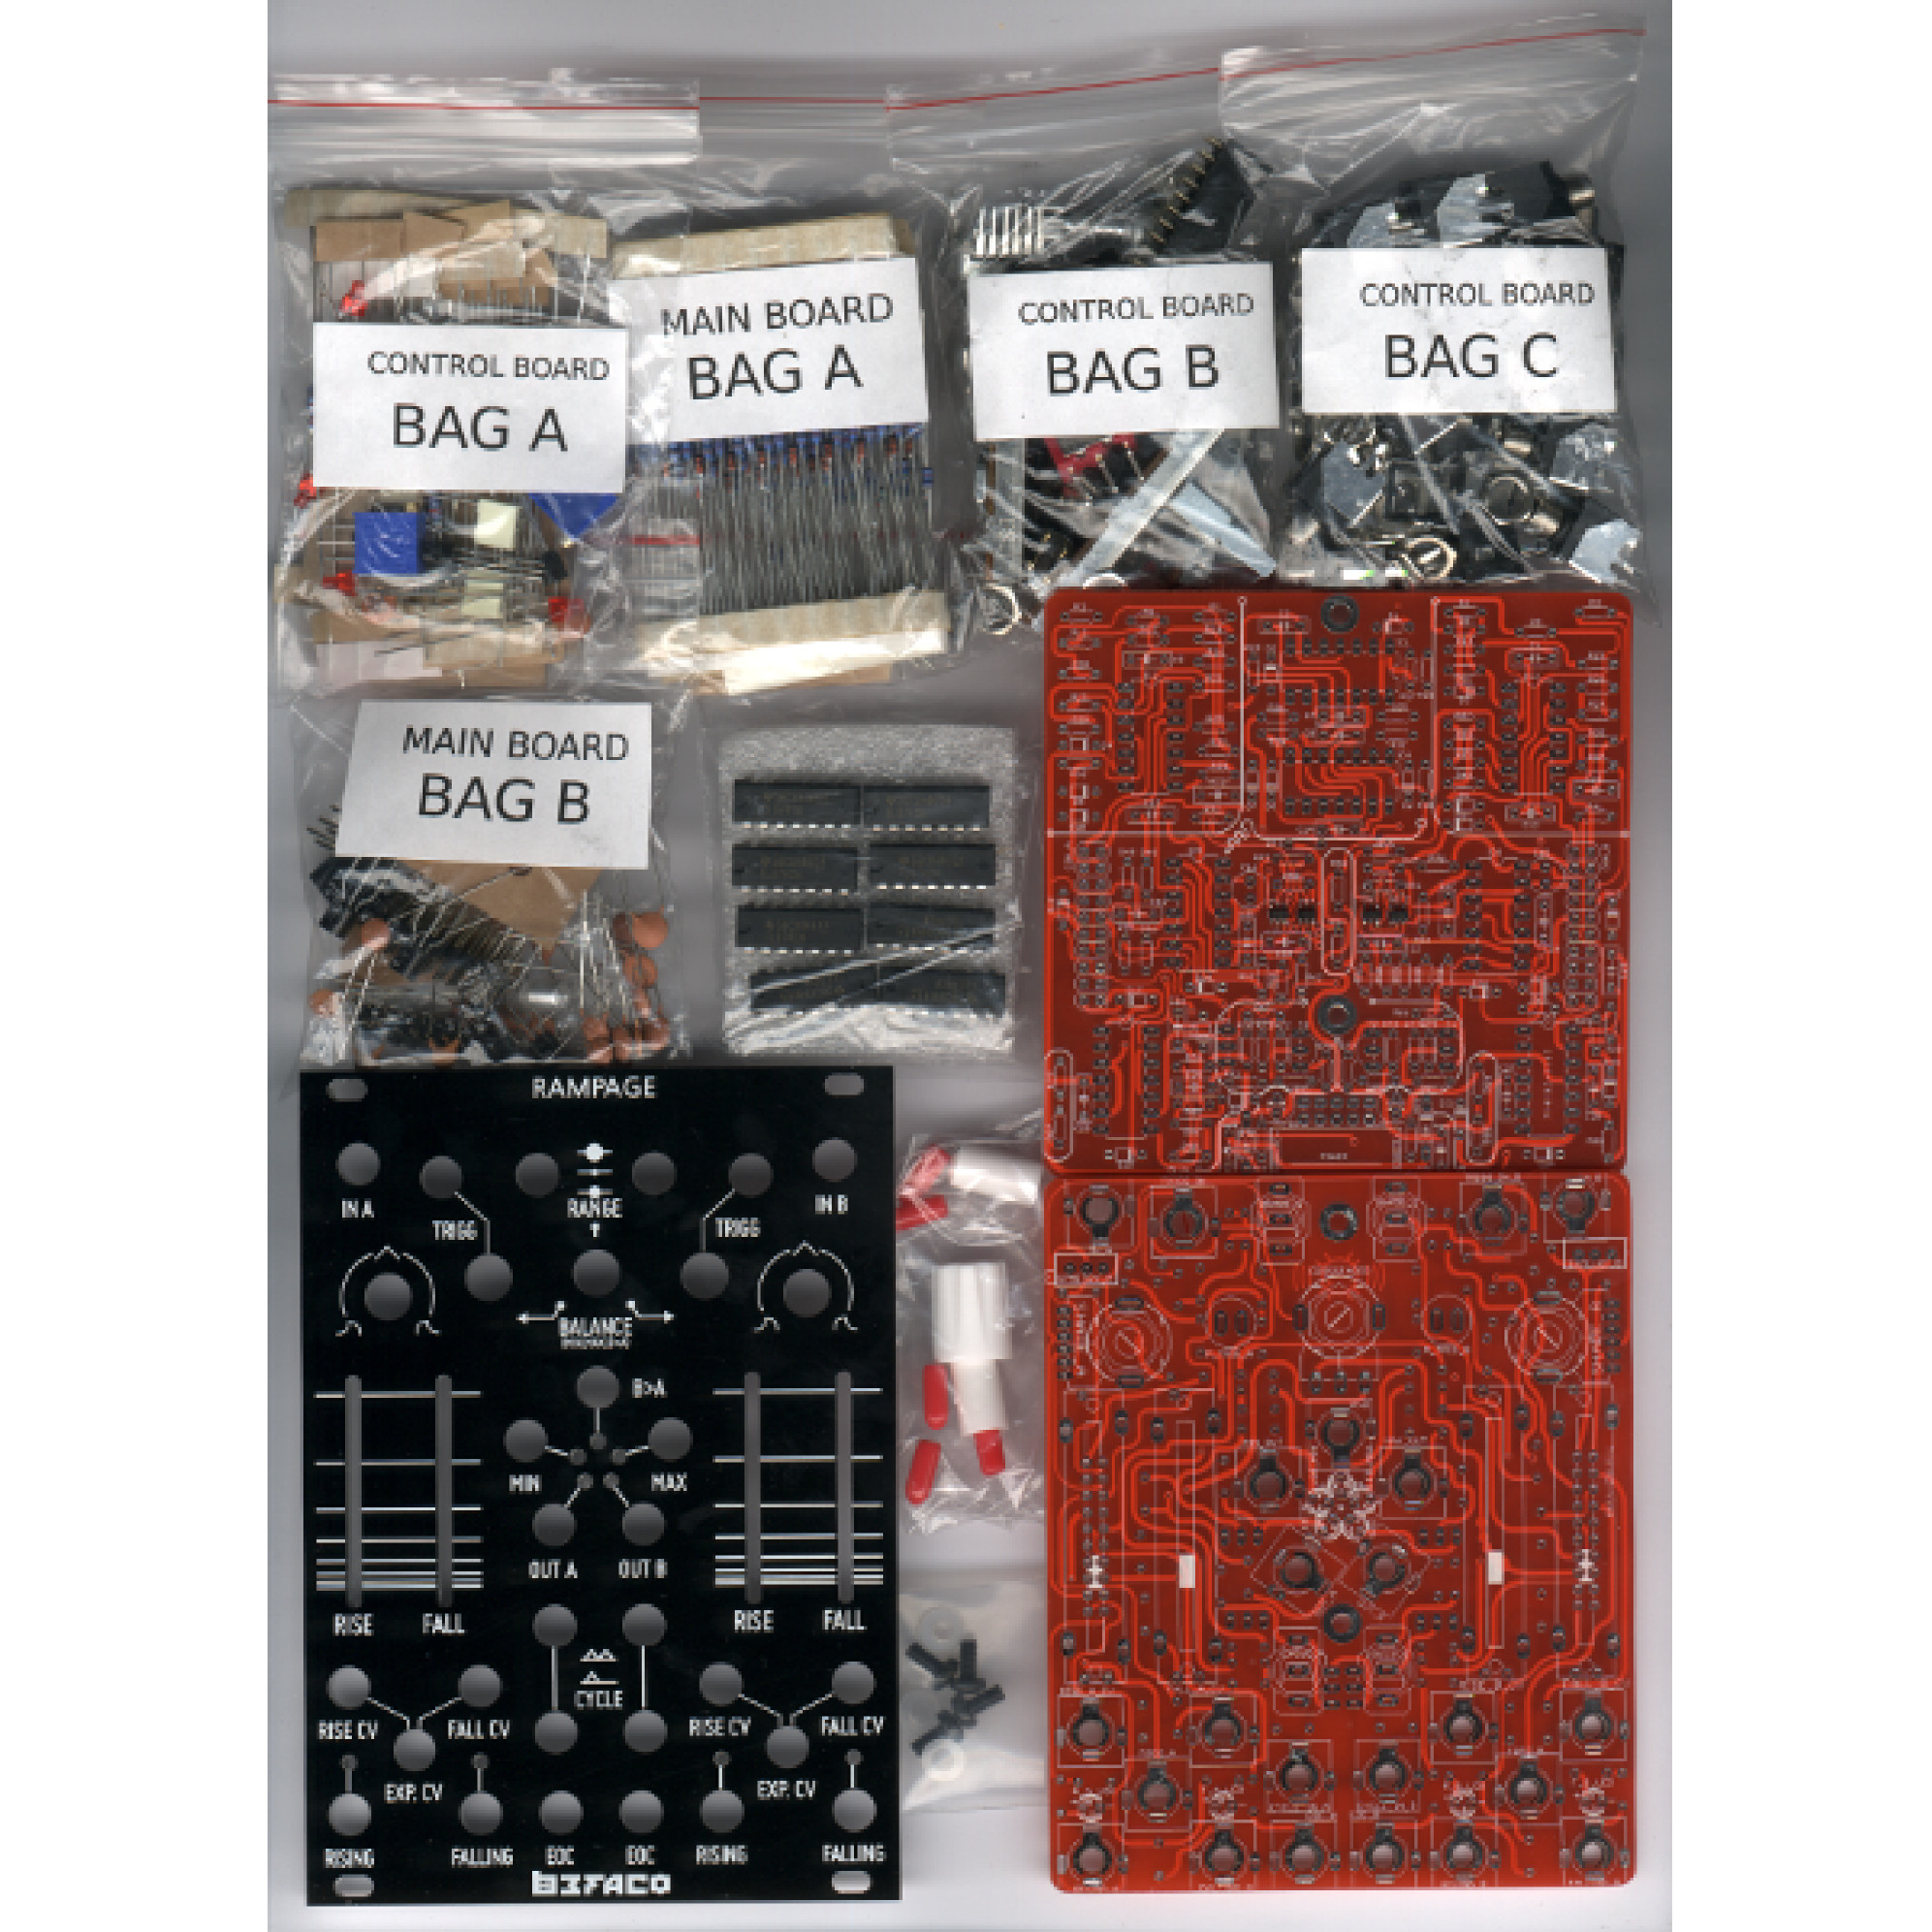 Best ideas about DIY Synthesizer Kits . Save or Pin Befaco – Rampage – Full DIY Kit Now.